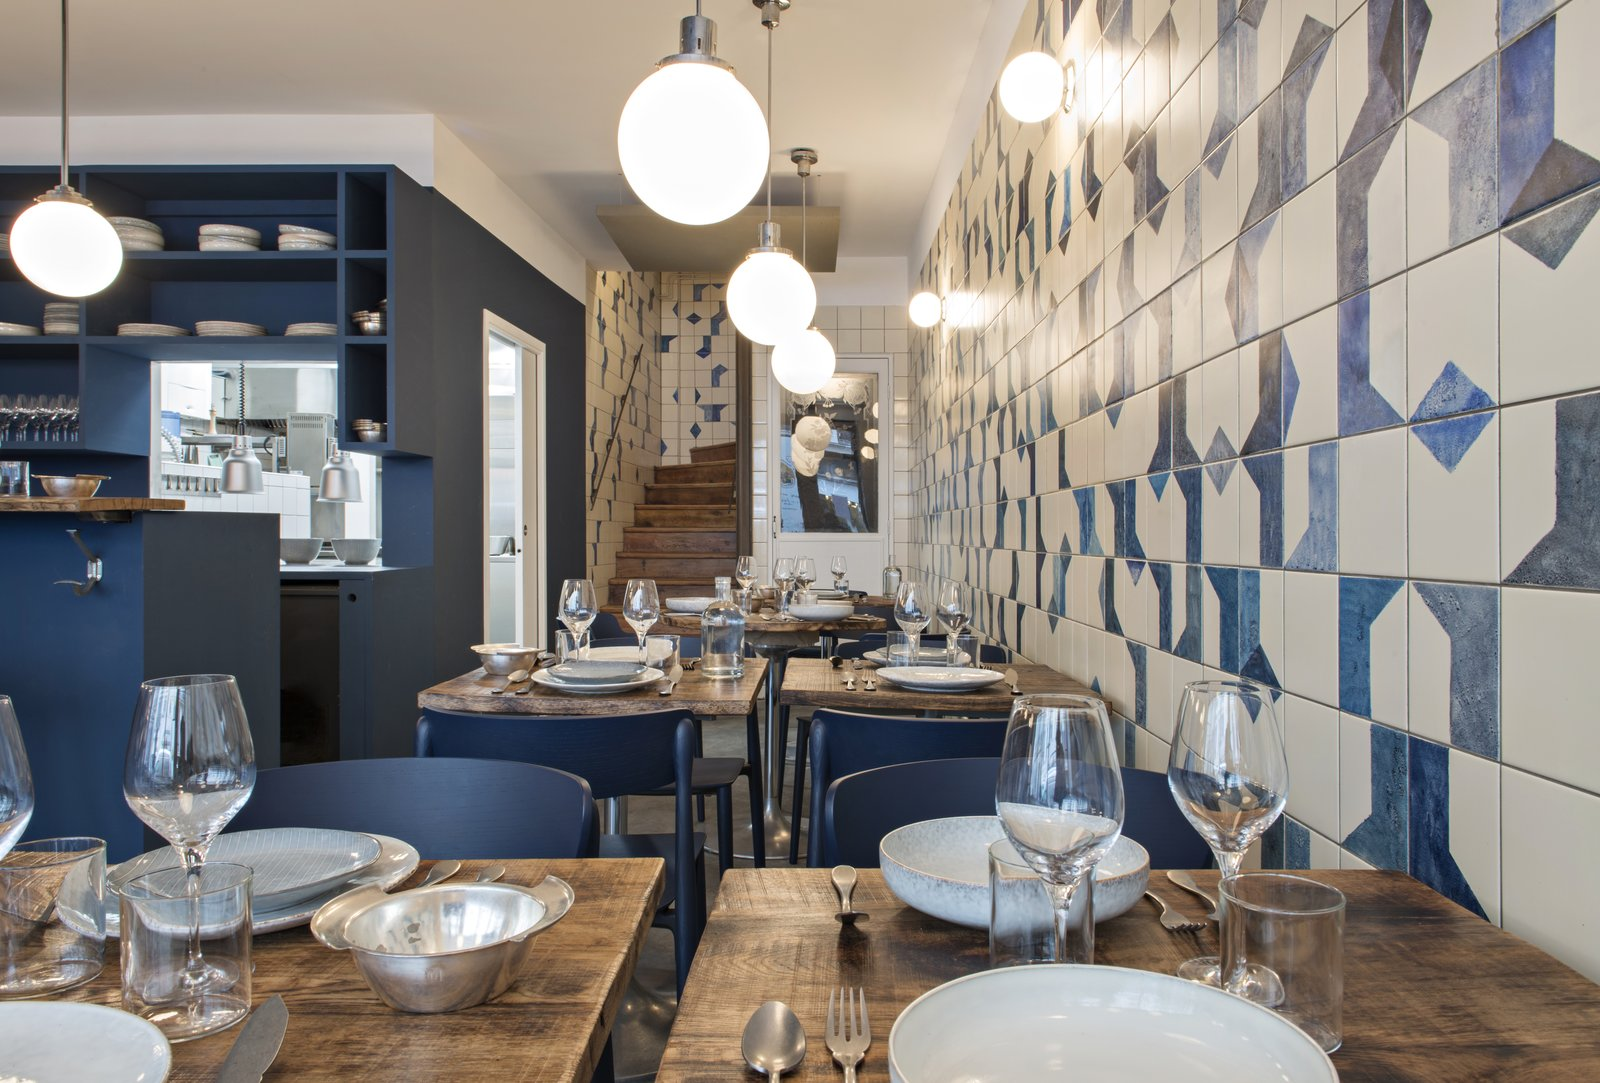 The hand-painted ceramic tile wraps along the wall and continues up the stairwell. Named after Belle Maison, after the owners' favorite beach, the restaurant is focused on seafood dishes. A Parisian Seafood Restaurant, Swimming in Shades of Blue - Photo 5 of 6